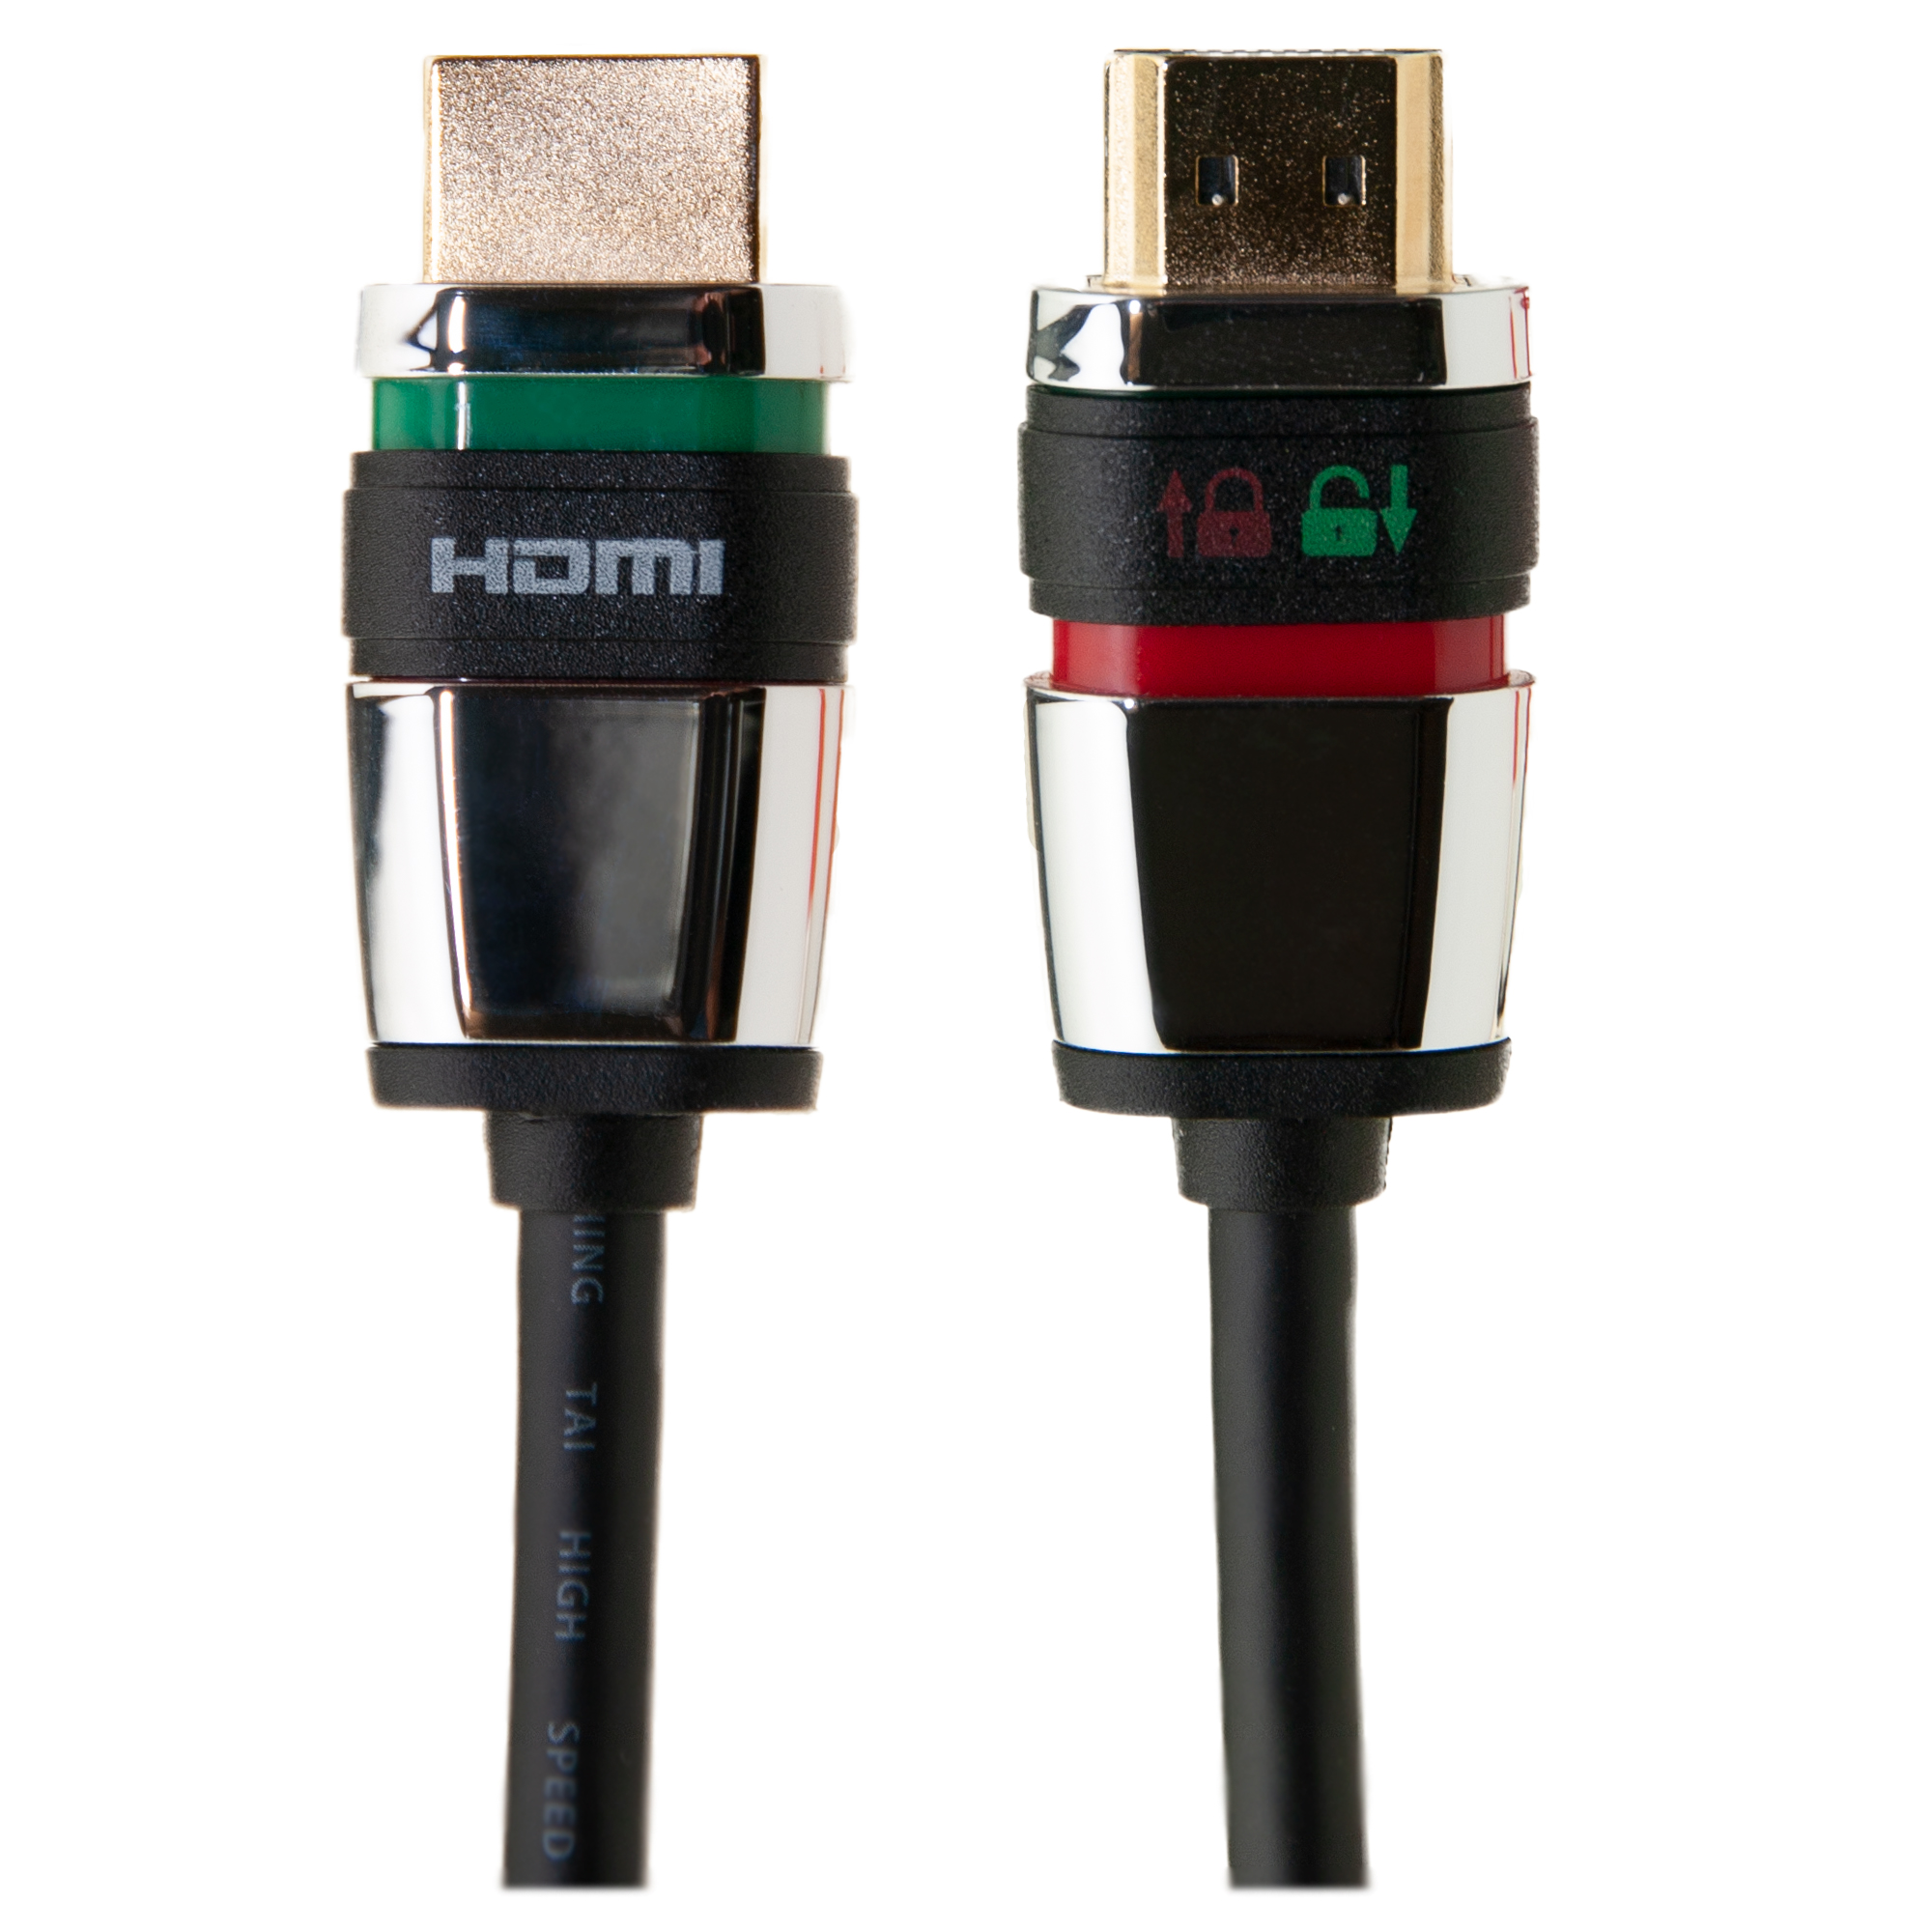 hight resolution of locking hdmi cable high speed with ethernet hdmi male 4k 1 5 foot